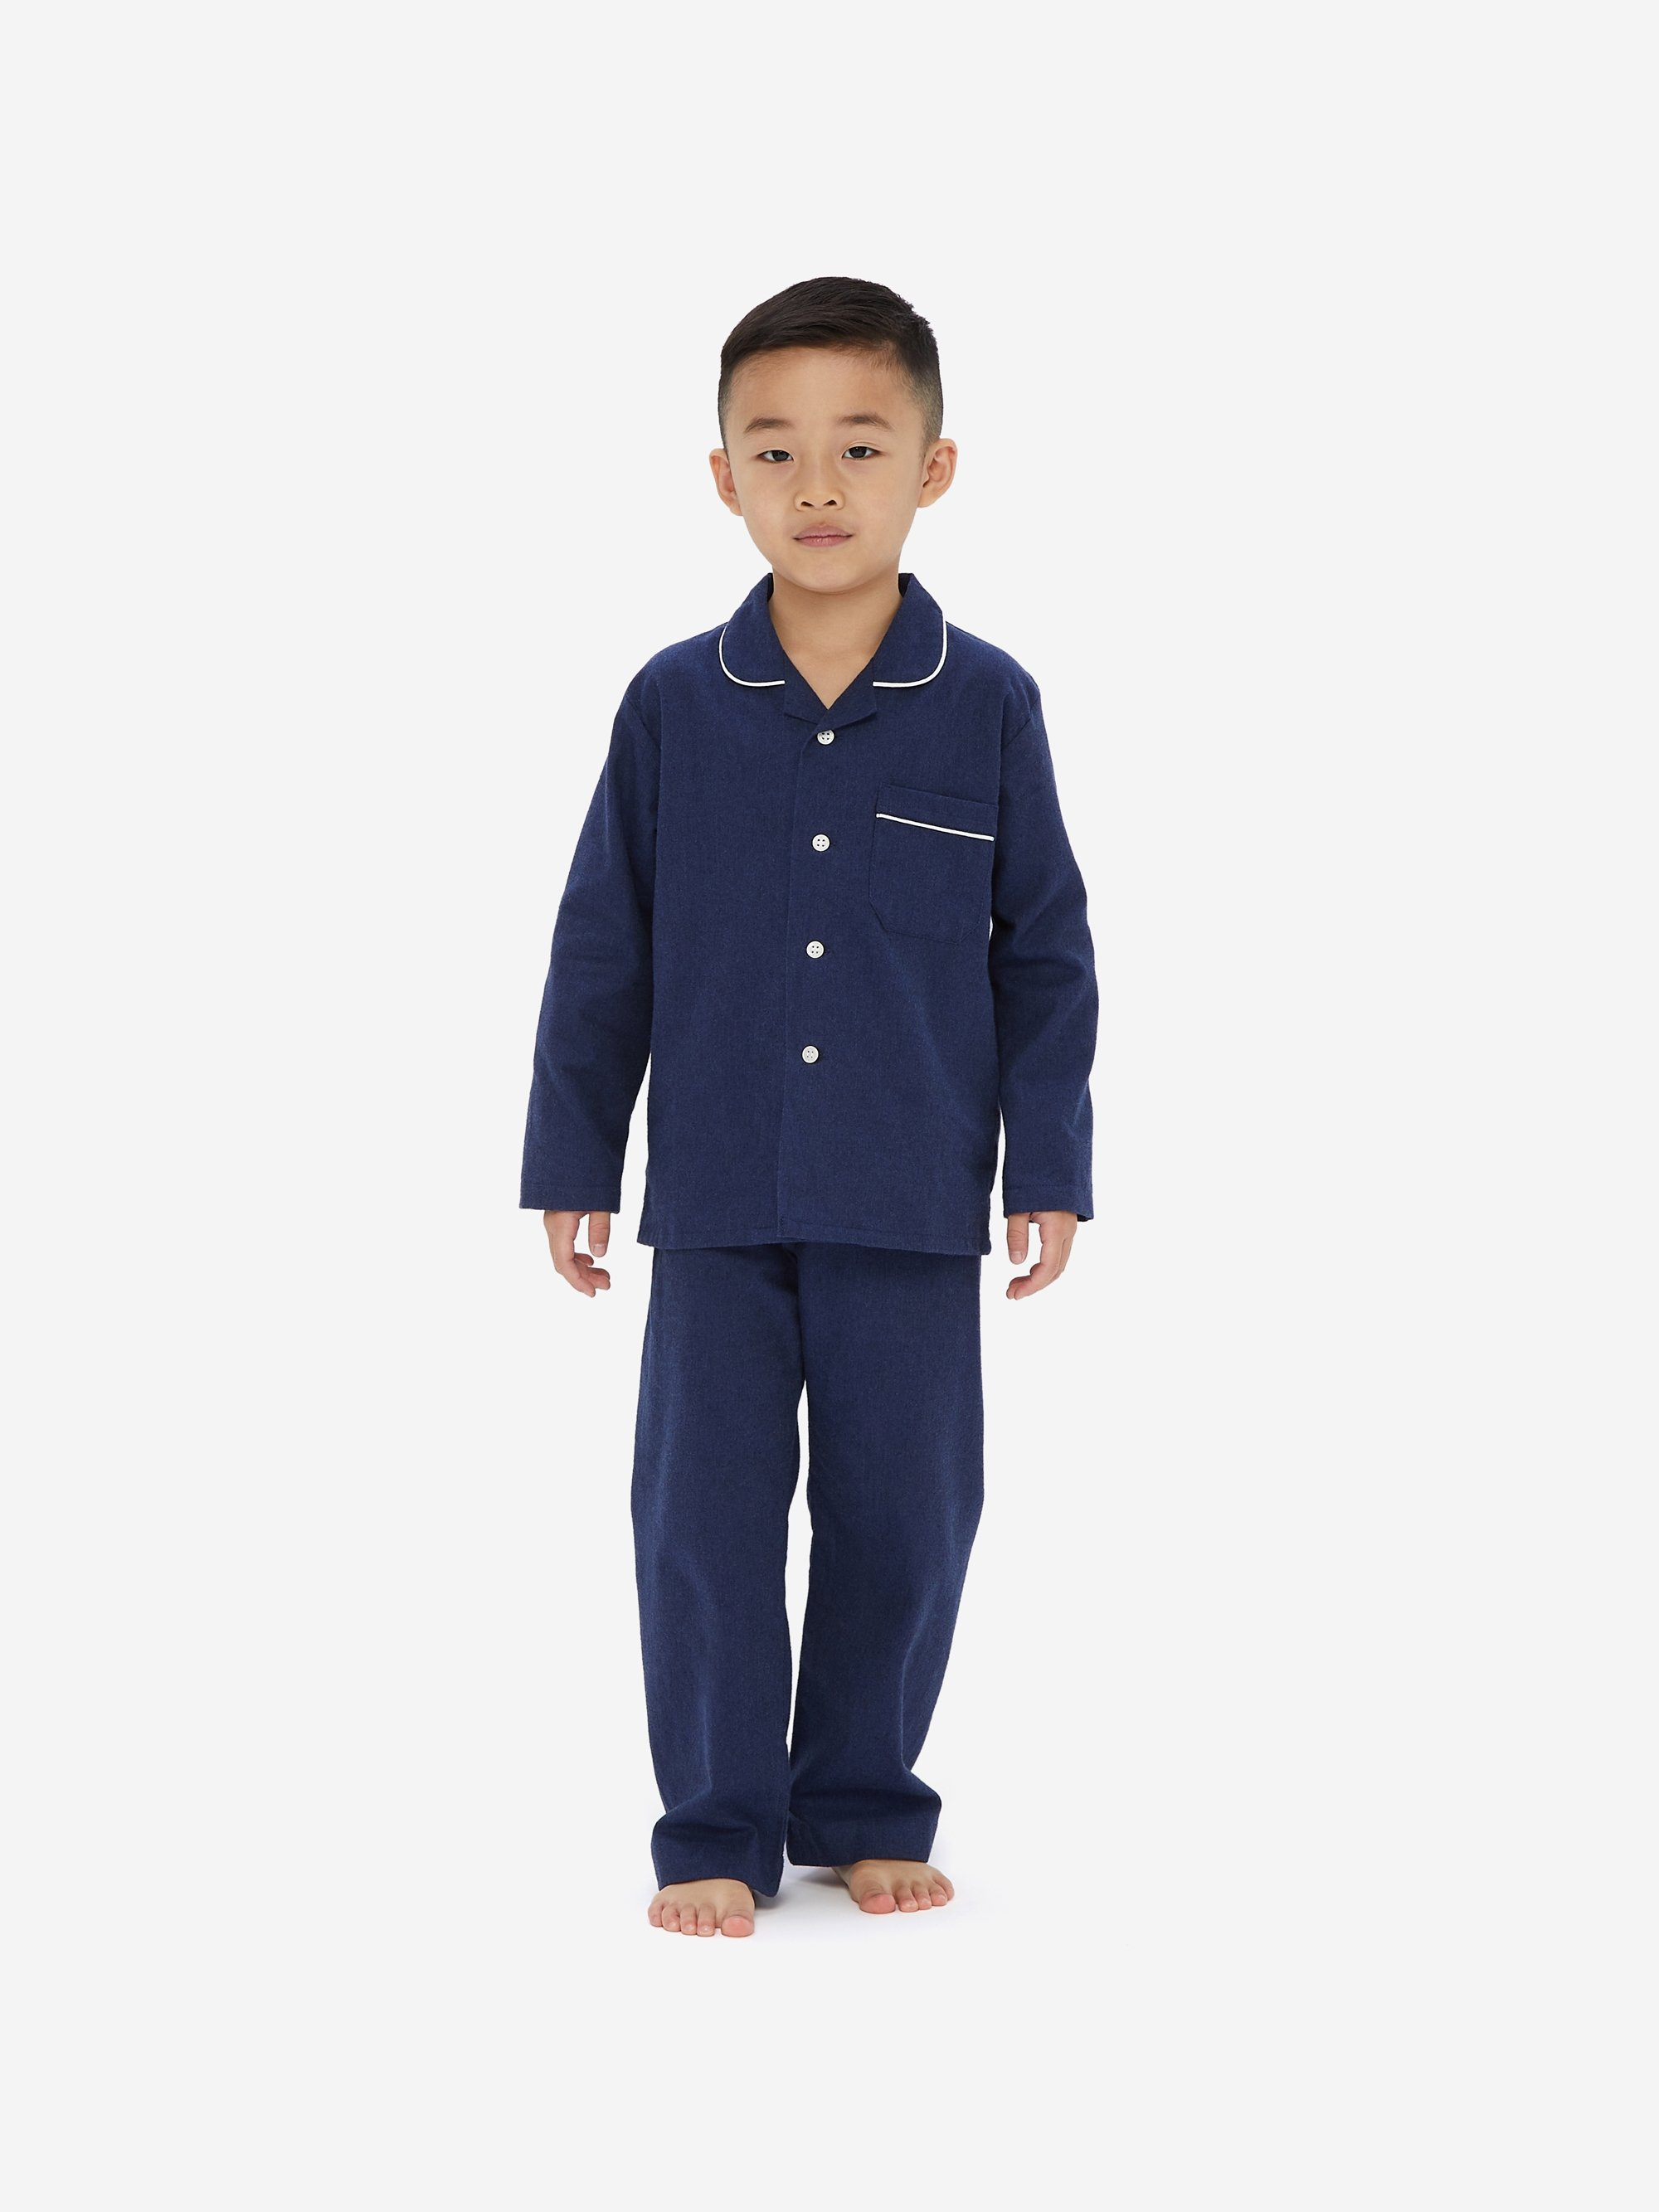 Kids' Pyjamas Balmoral 3 Brushed Cotton Navy